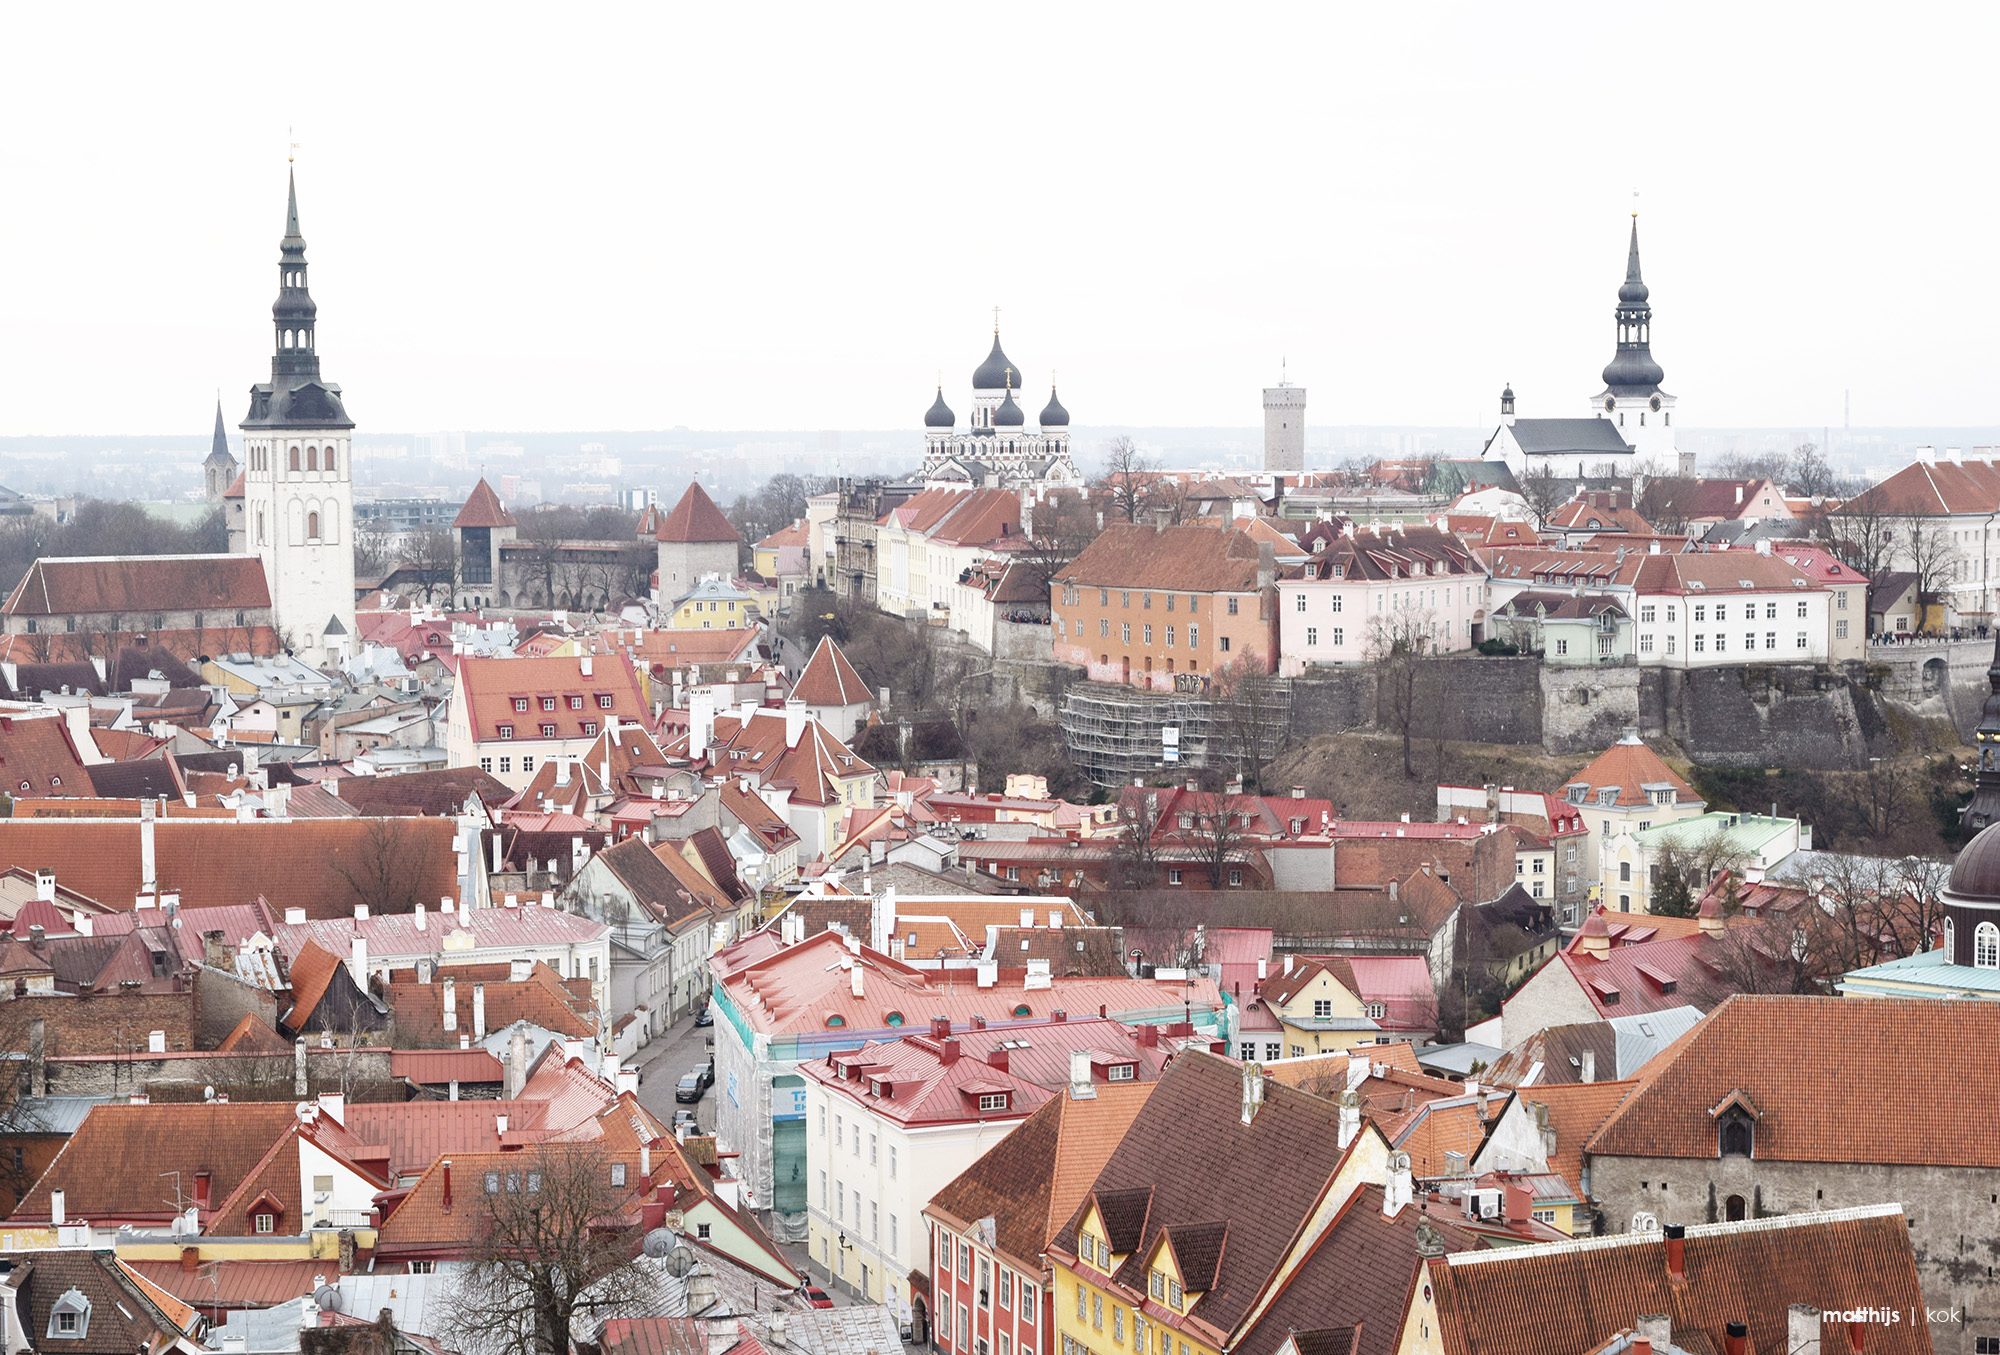 Aerial view of the Toompea Hill, upper city of Tallinn, Estonia | Photo by Matthijs Kok